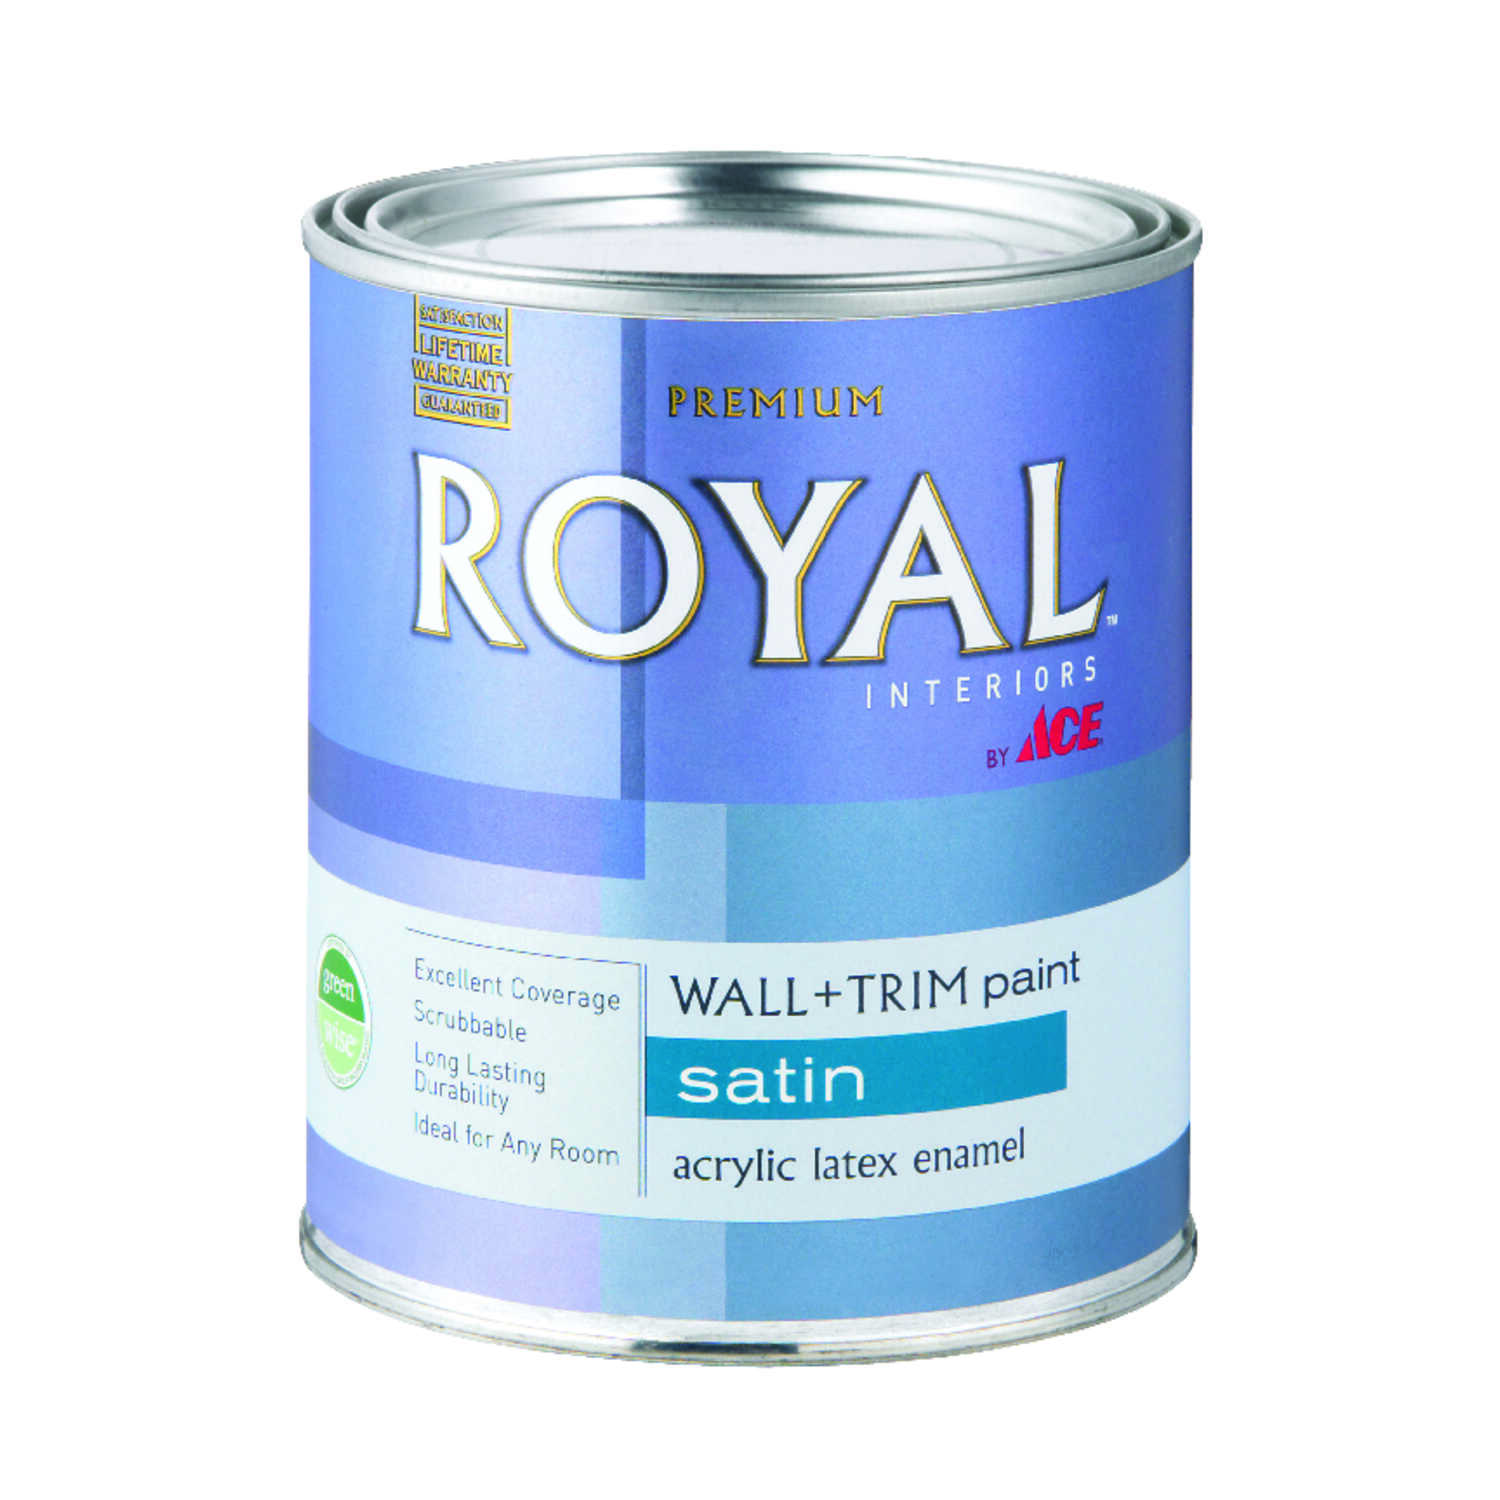 Ace  Royal  Satin  High Hiding White  Vinyl Acetate/Ethylene  Interior Latex Wall+Trim Paint  1 qt.